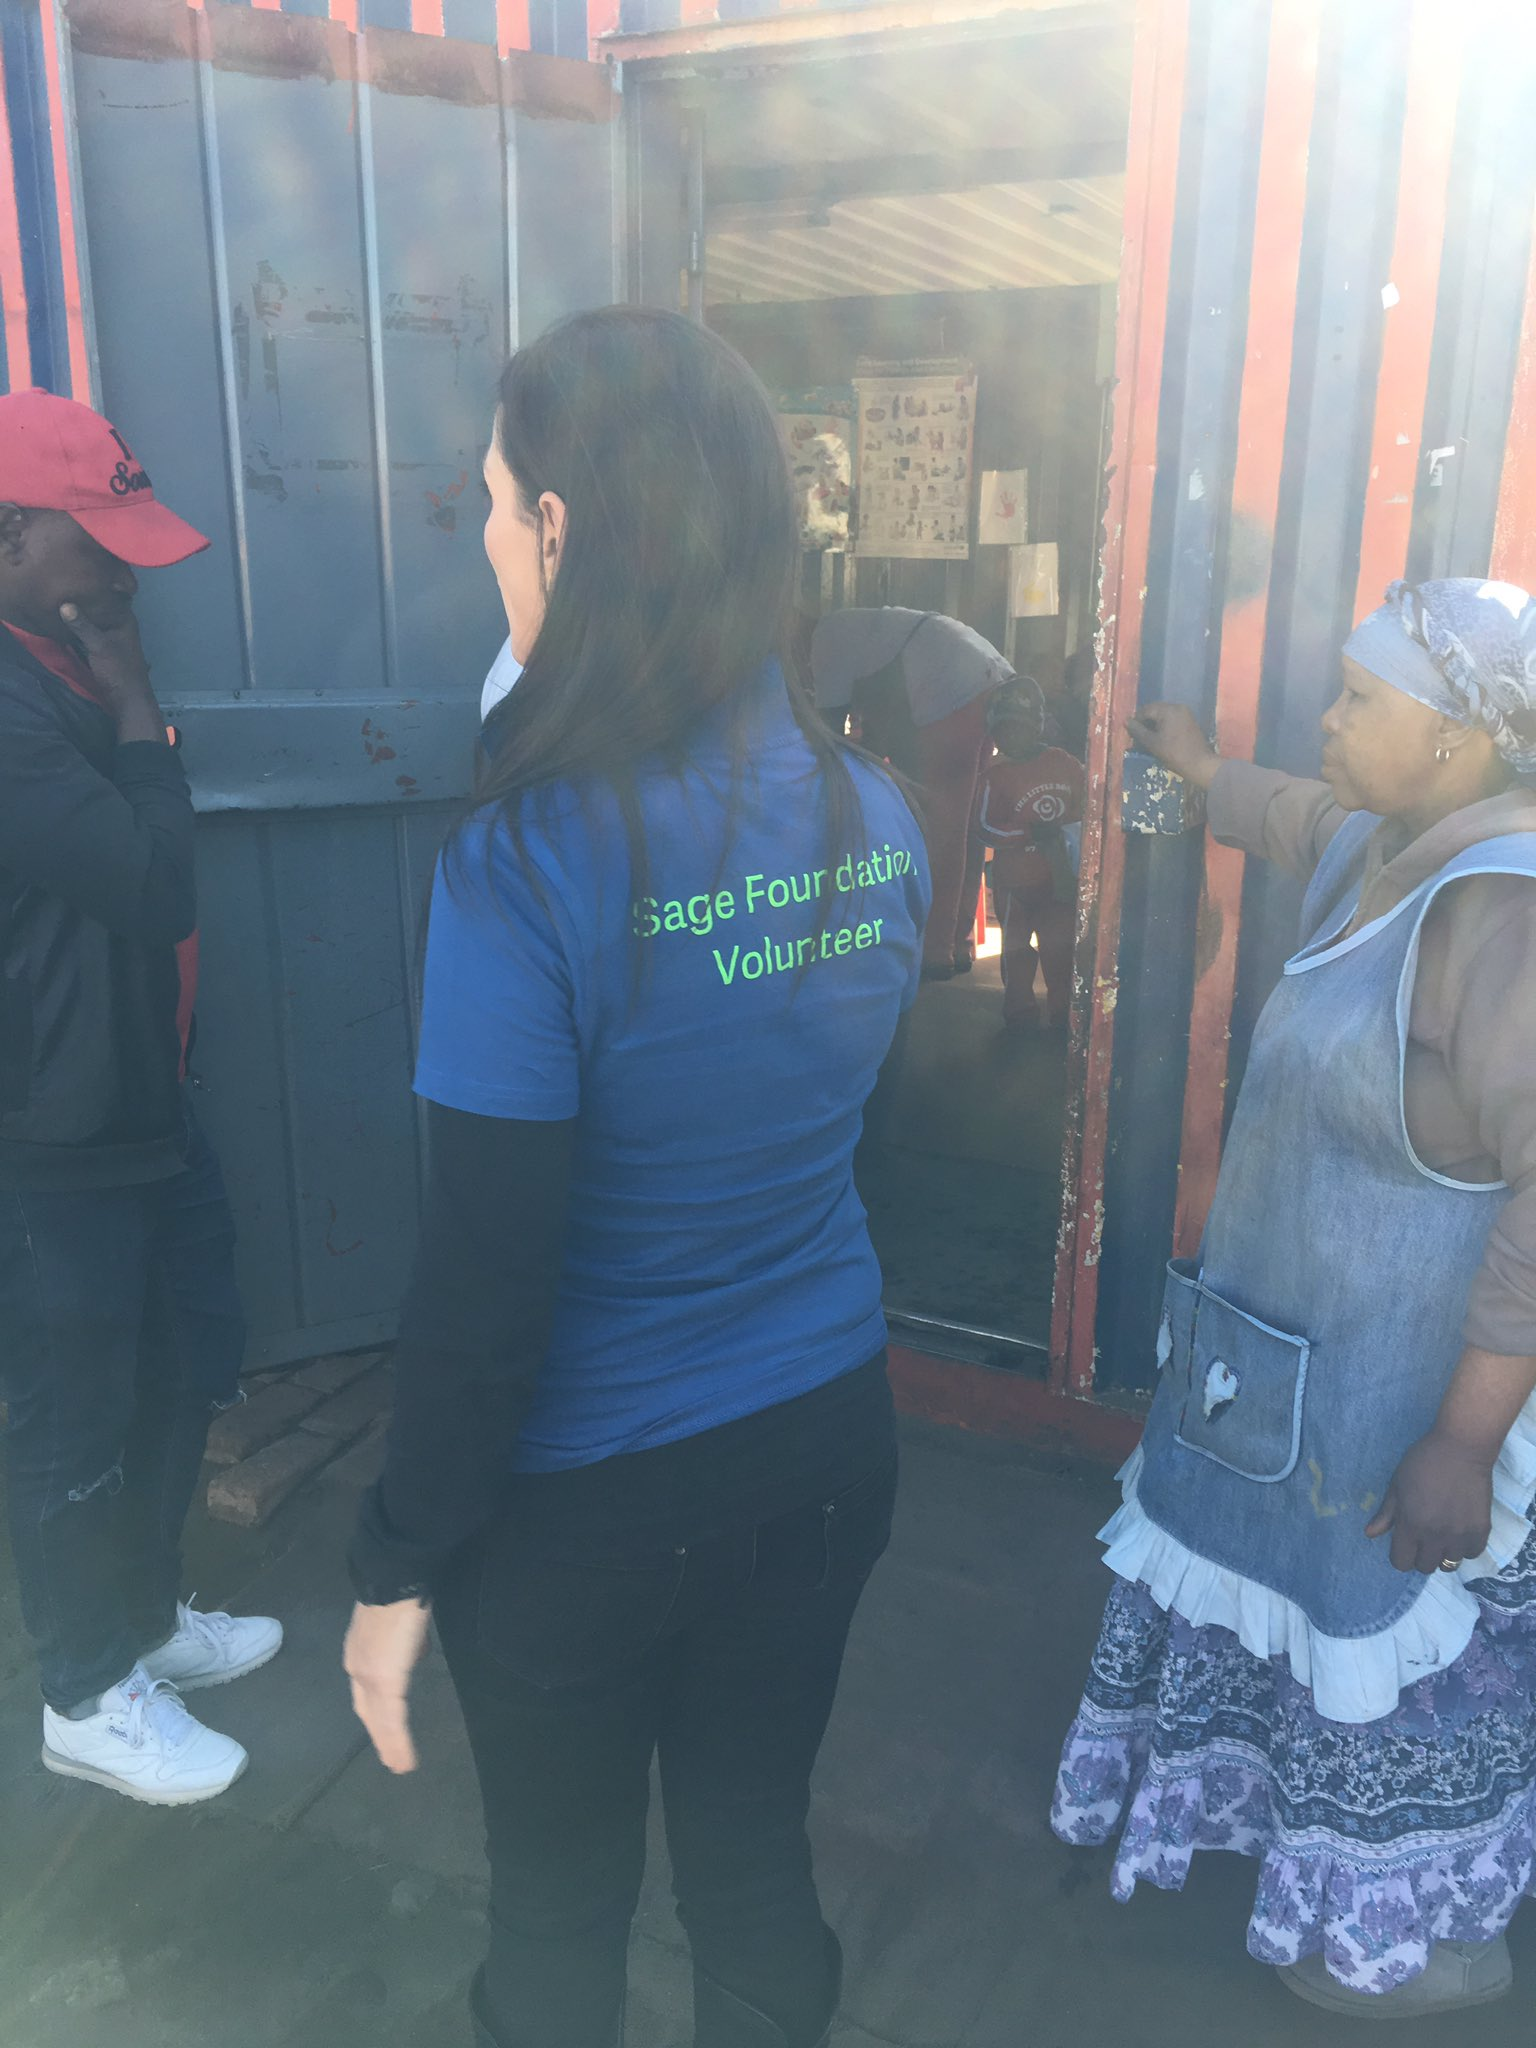 Today we are out at Little Rose Centre in Kliptown. One of our first NPO partnerships. #SageFoundation #MandelaWeek https://t.co/lOUgcxH2u4